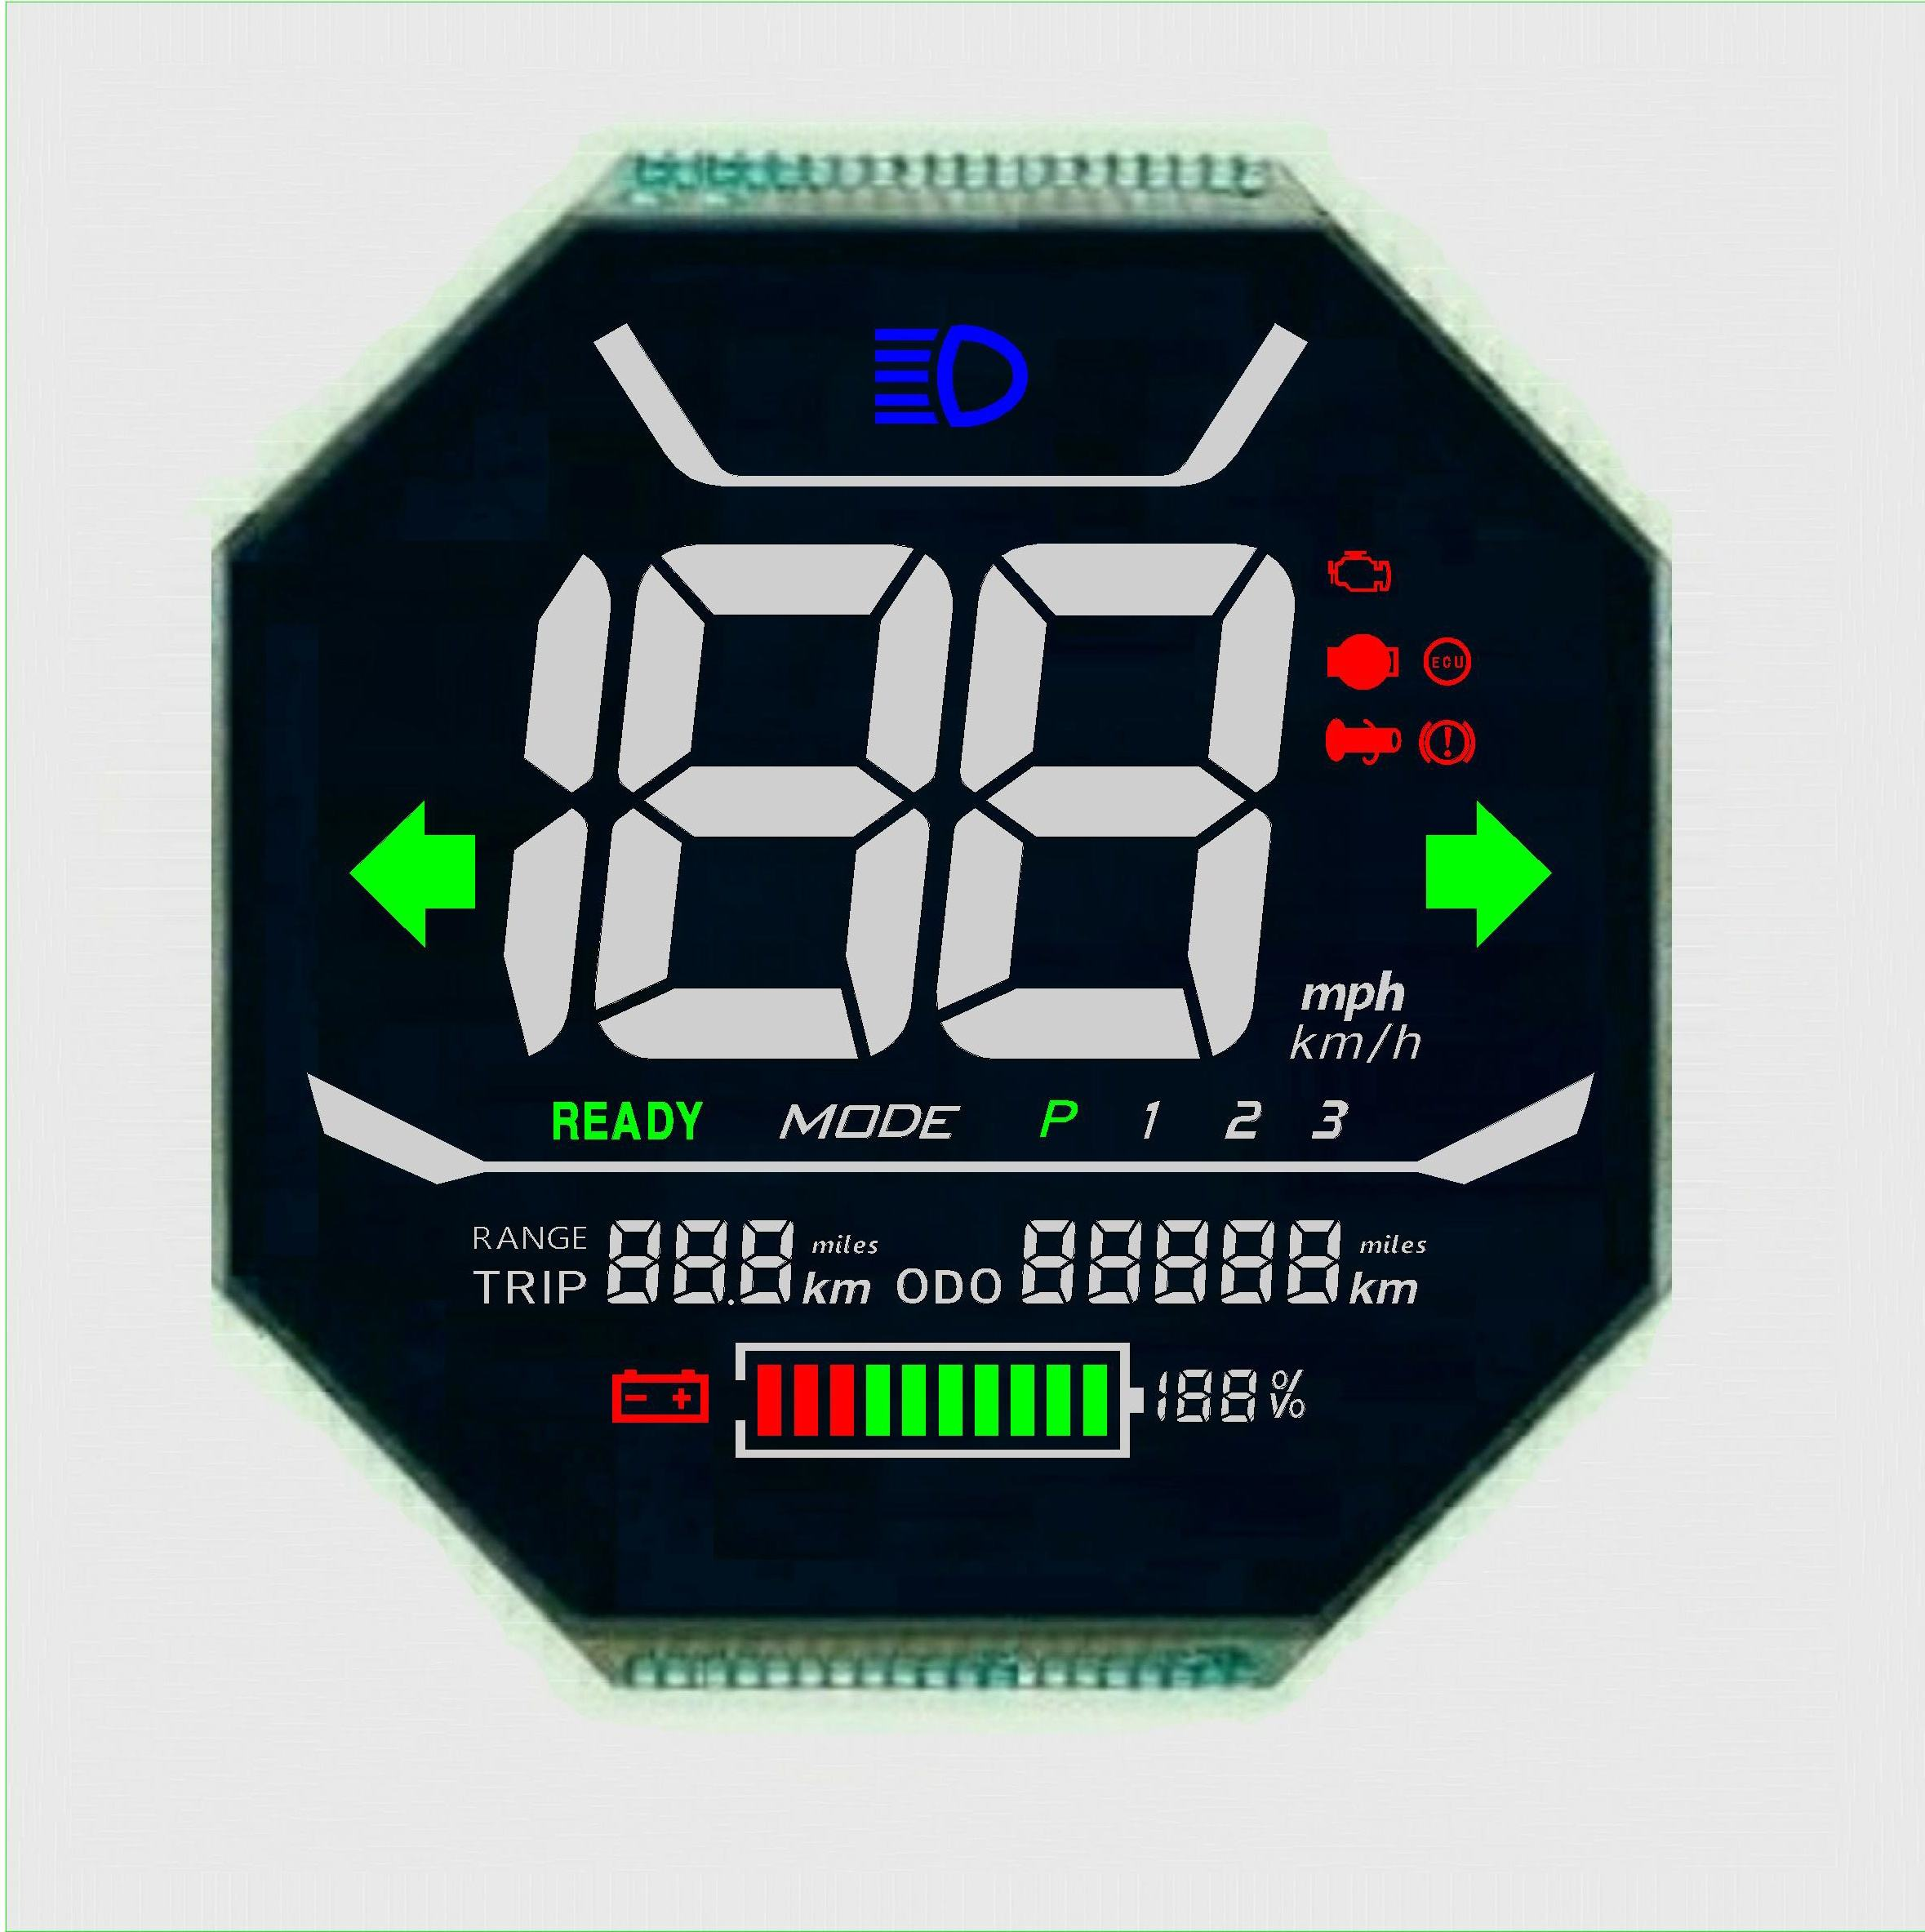 speed meter lcd display 7 segment lcd display outdoor black and white VA negative mode metal pin connector LCD panel